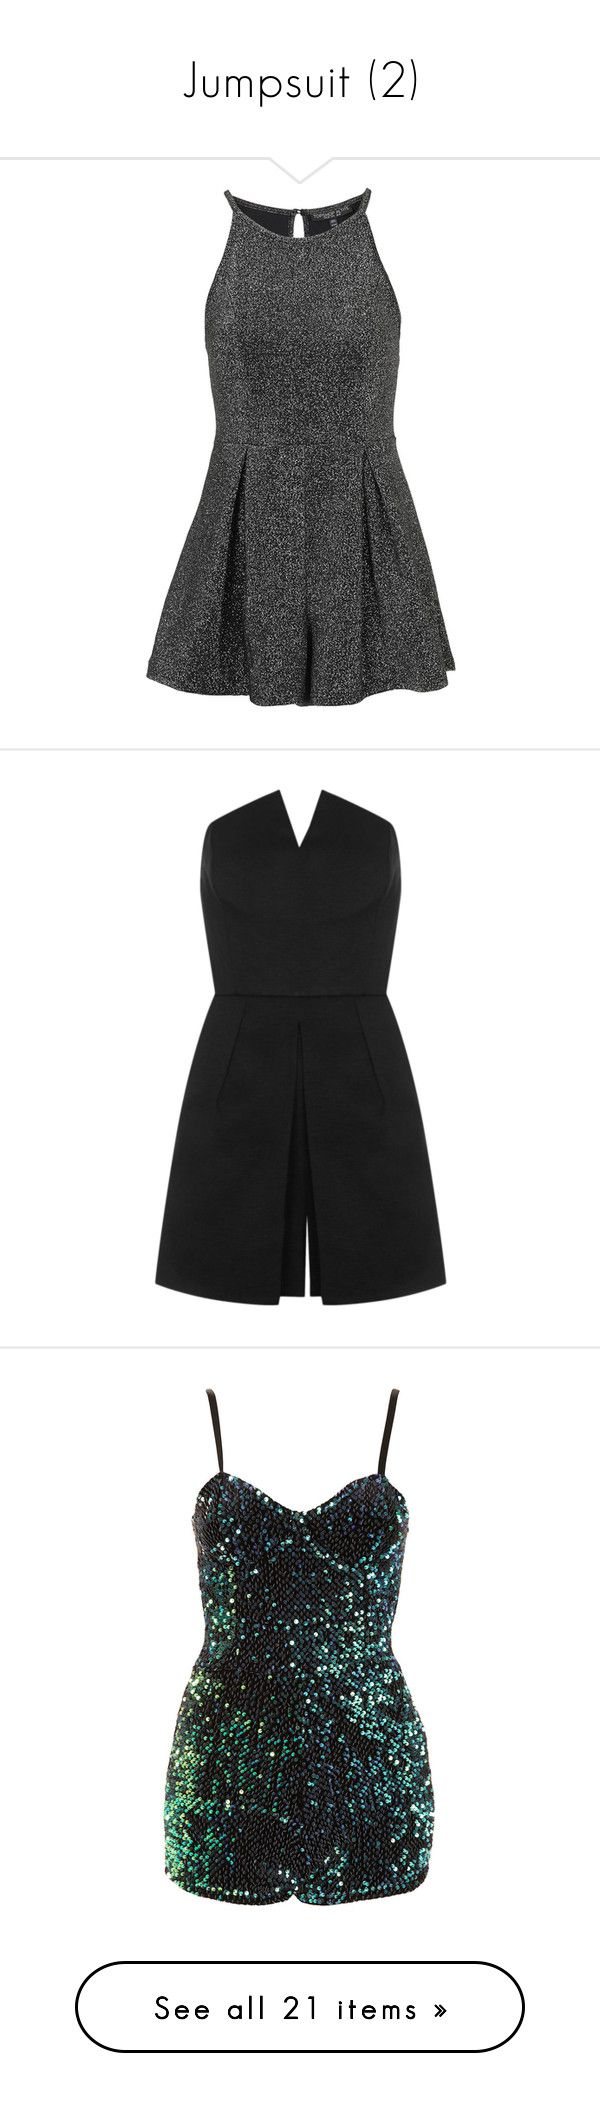 """Jumpsuit (2)"" by geniusmermaid ❤ liked on Polyvore featuring jumpsuits, rompers, dresses, vestidos, playsuits, petite, silver, playsuit romper, topshop rompers and topshop romper"